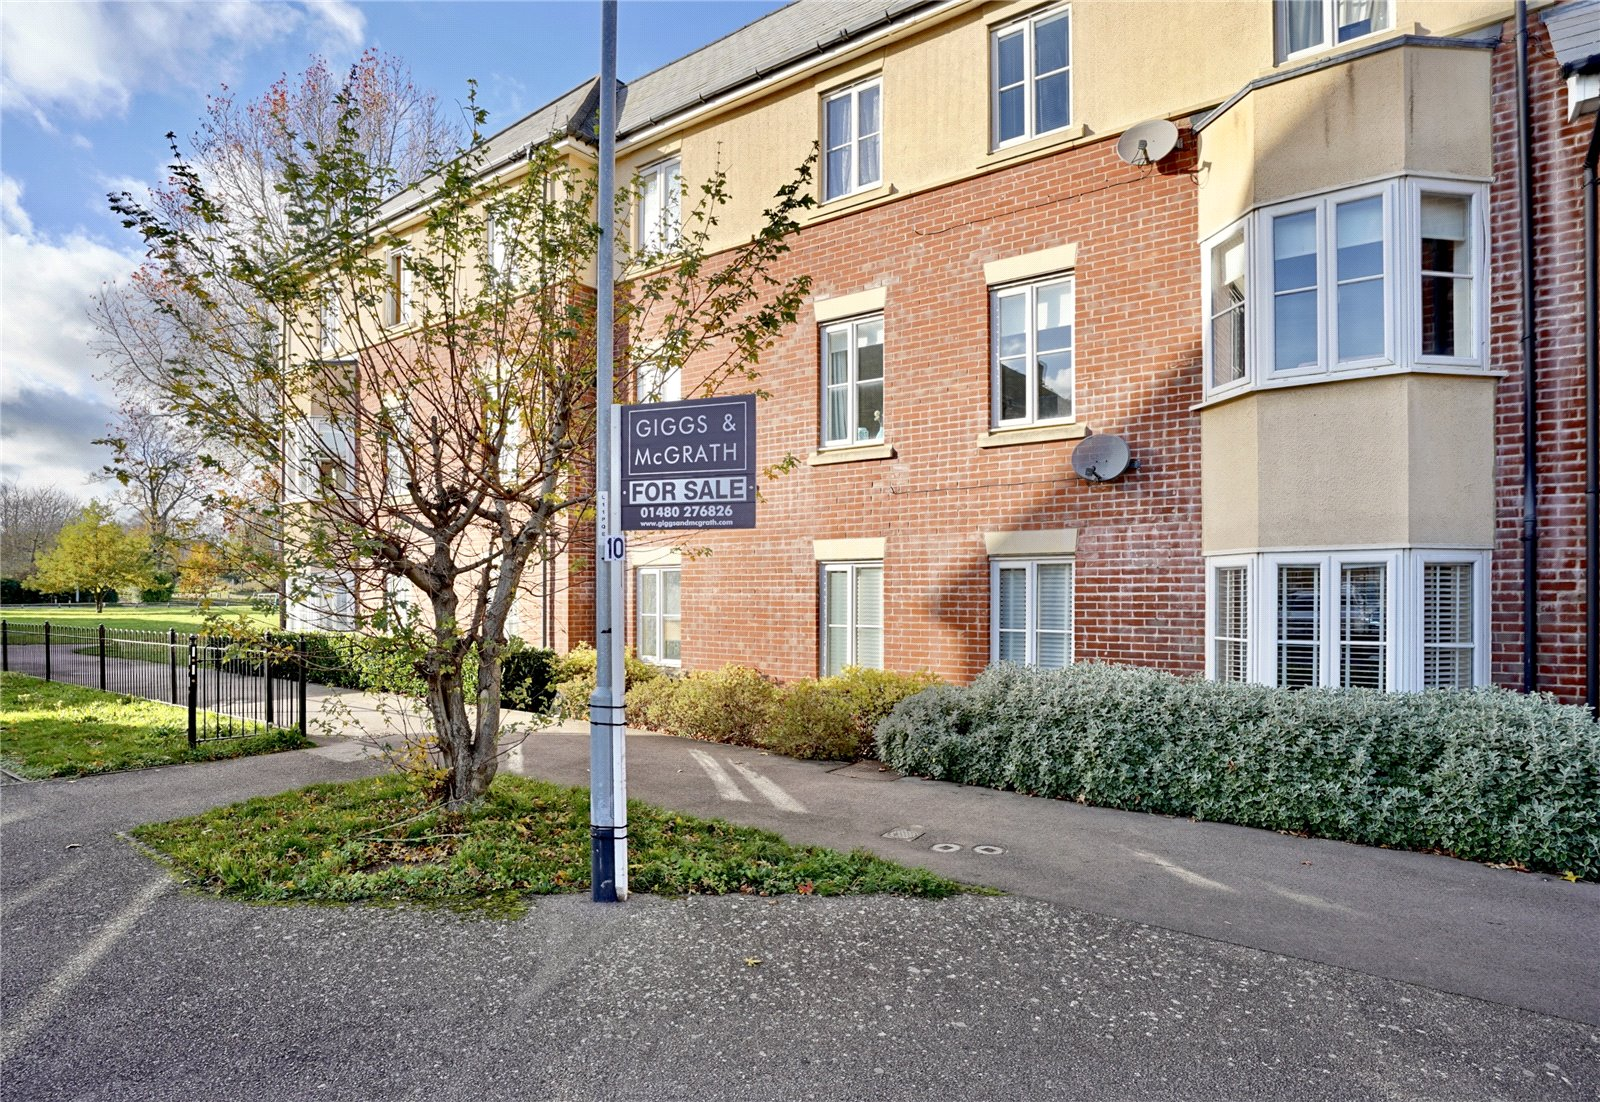 2 bed apartment for sale in Papworth Everard, CB23 3RZ, CB23